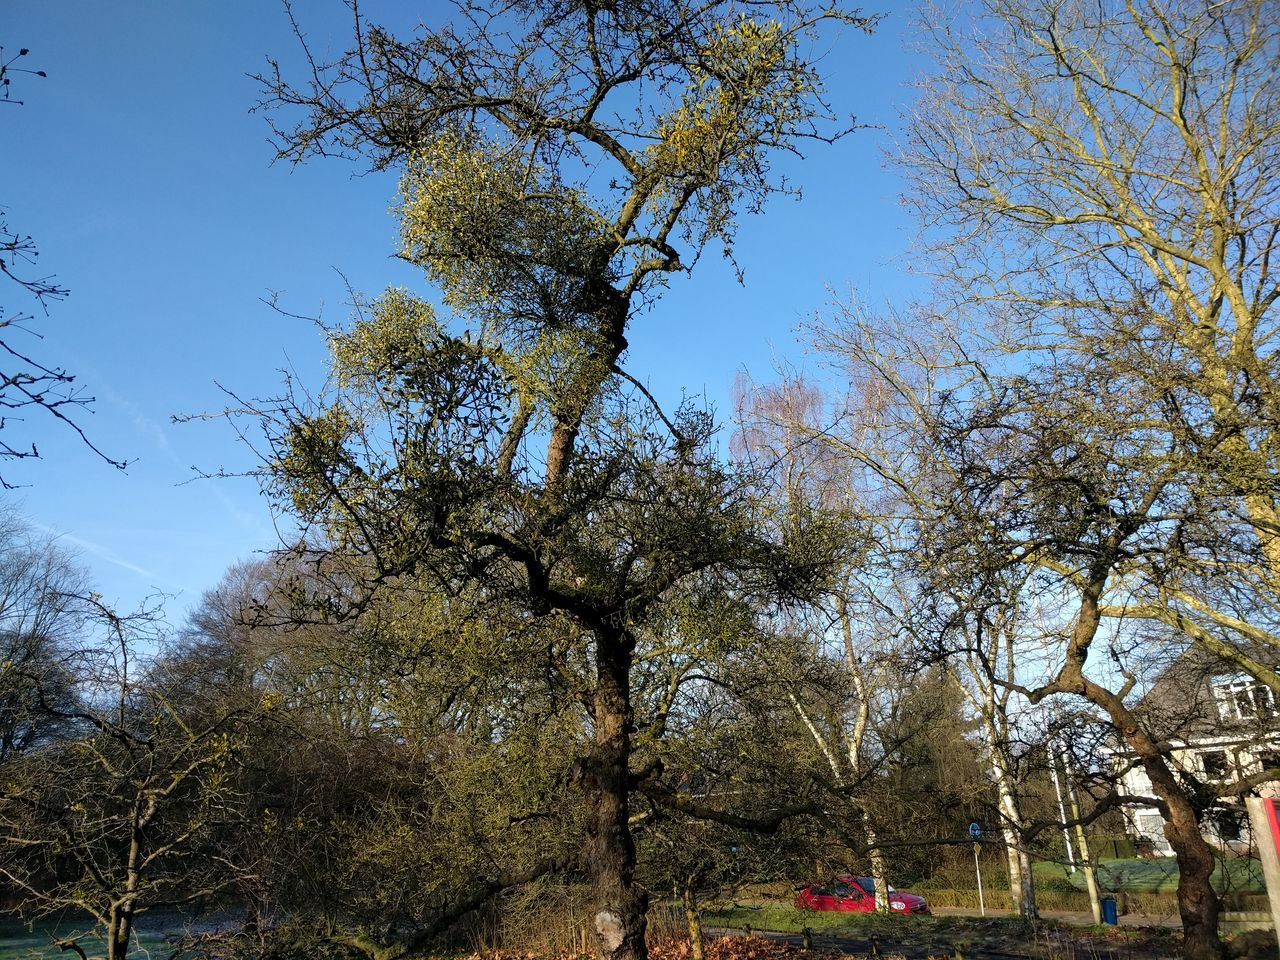 tree, branch, growth, nature, low angle view, beauty in nature, day, no people, outdoors, tranquility, sky, bare tree